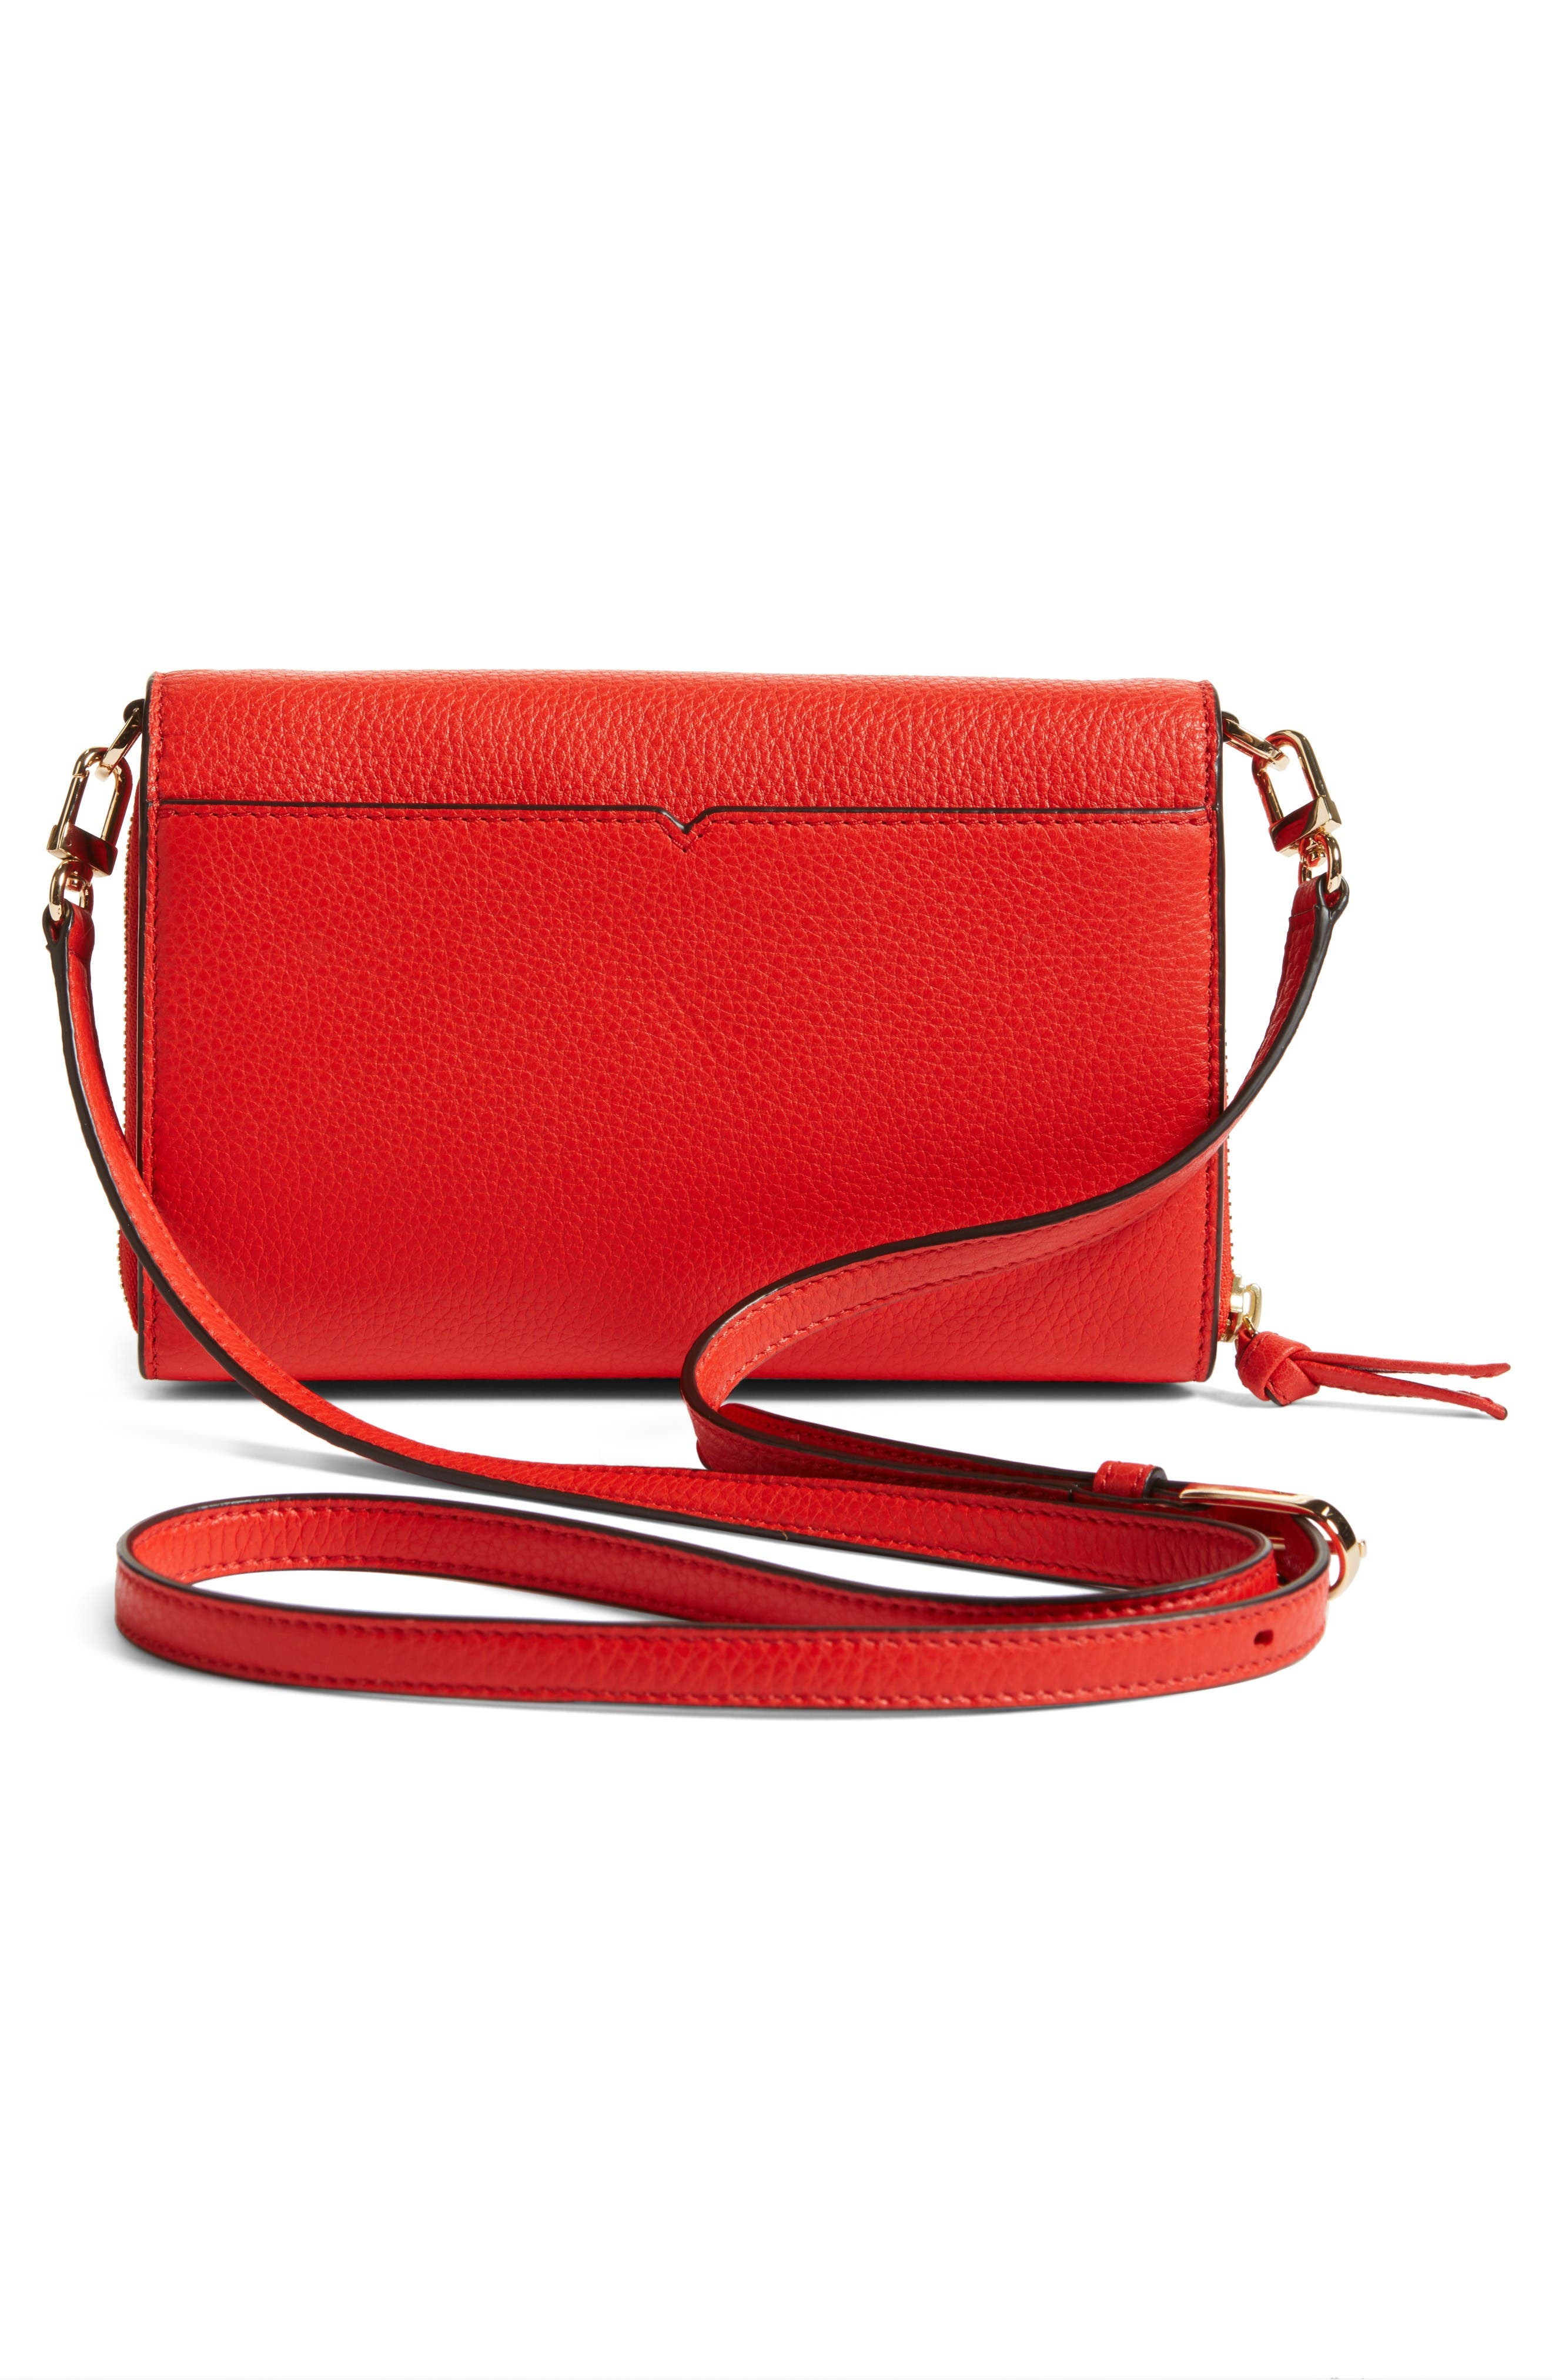 Alternate Image 2  - Tory Burch 'Harper' Pebbled Leather Wallet Crossbody Bag